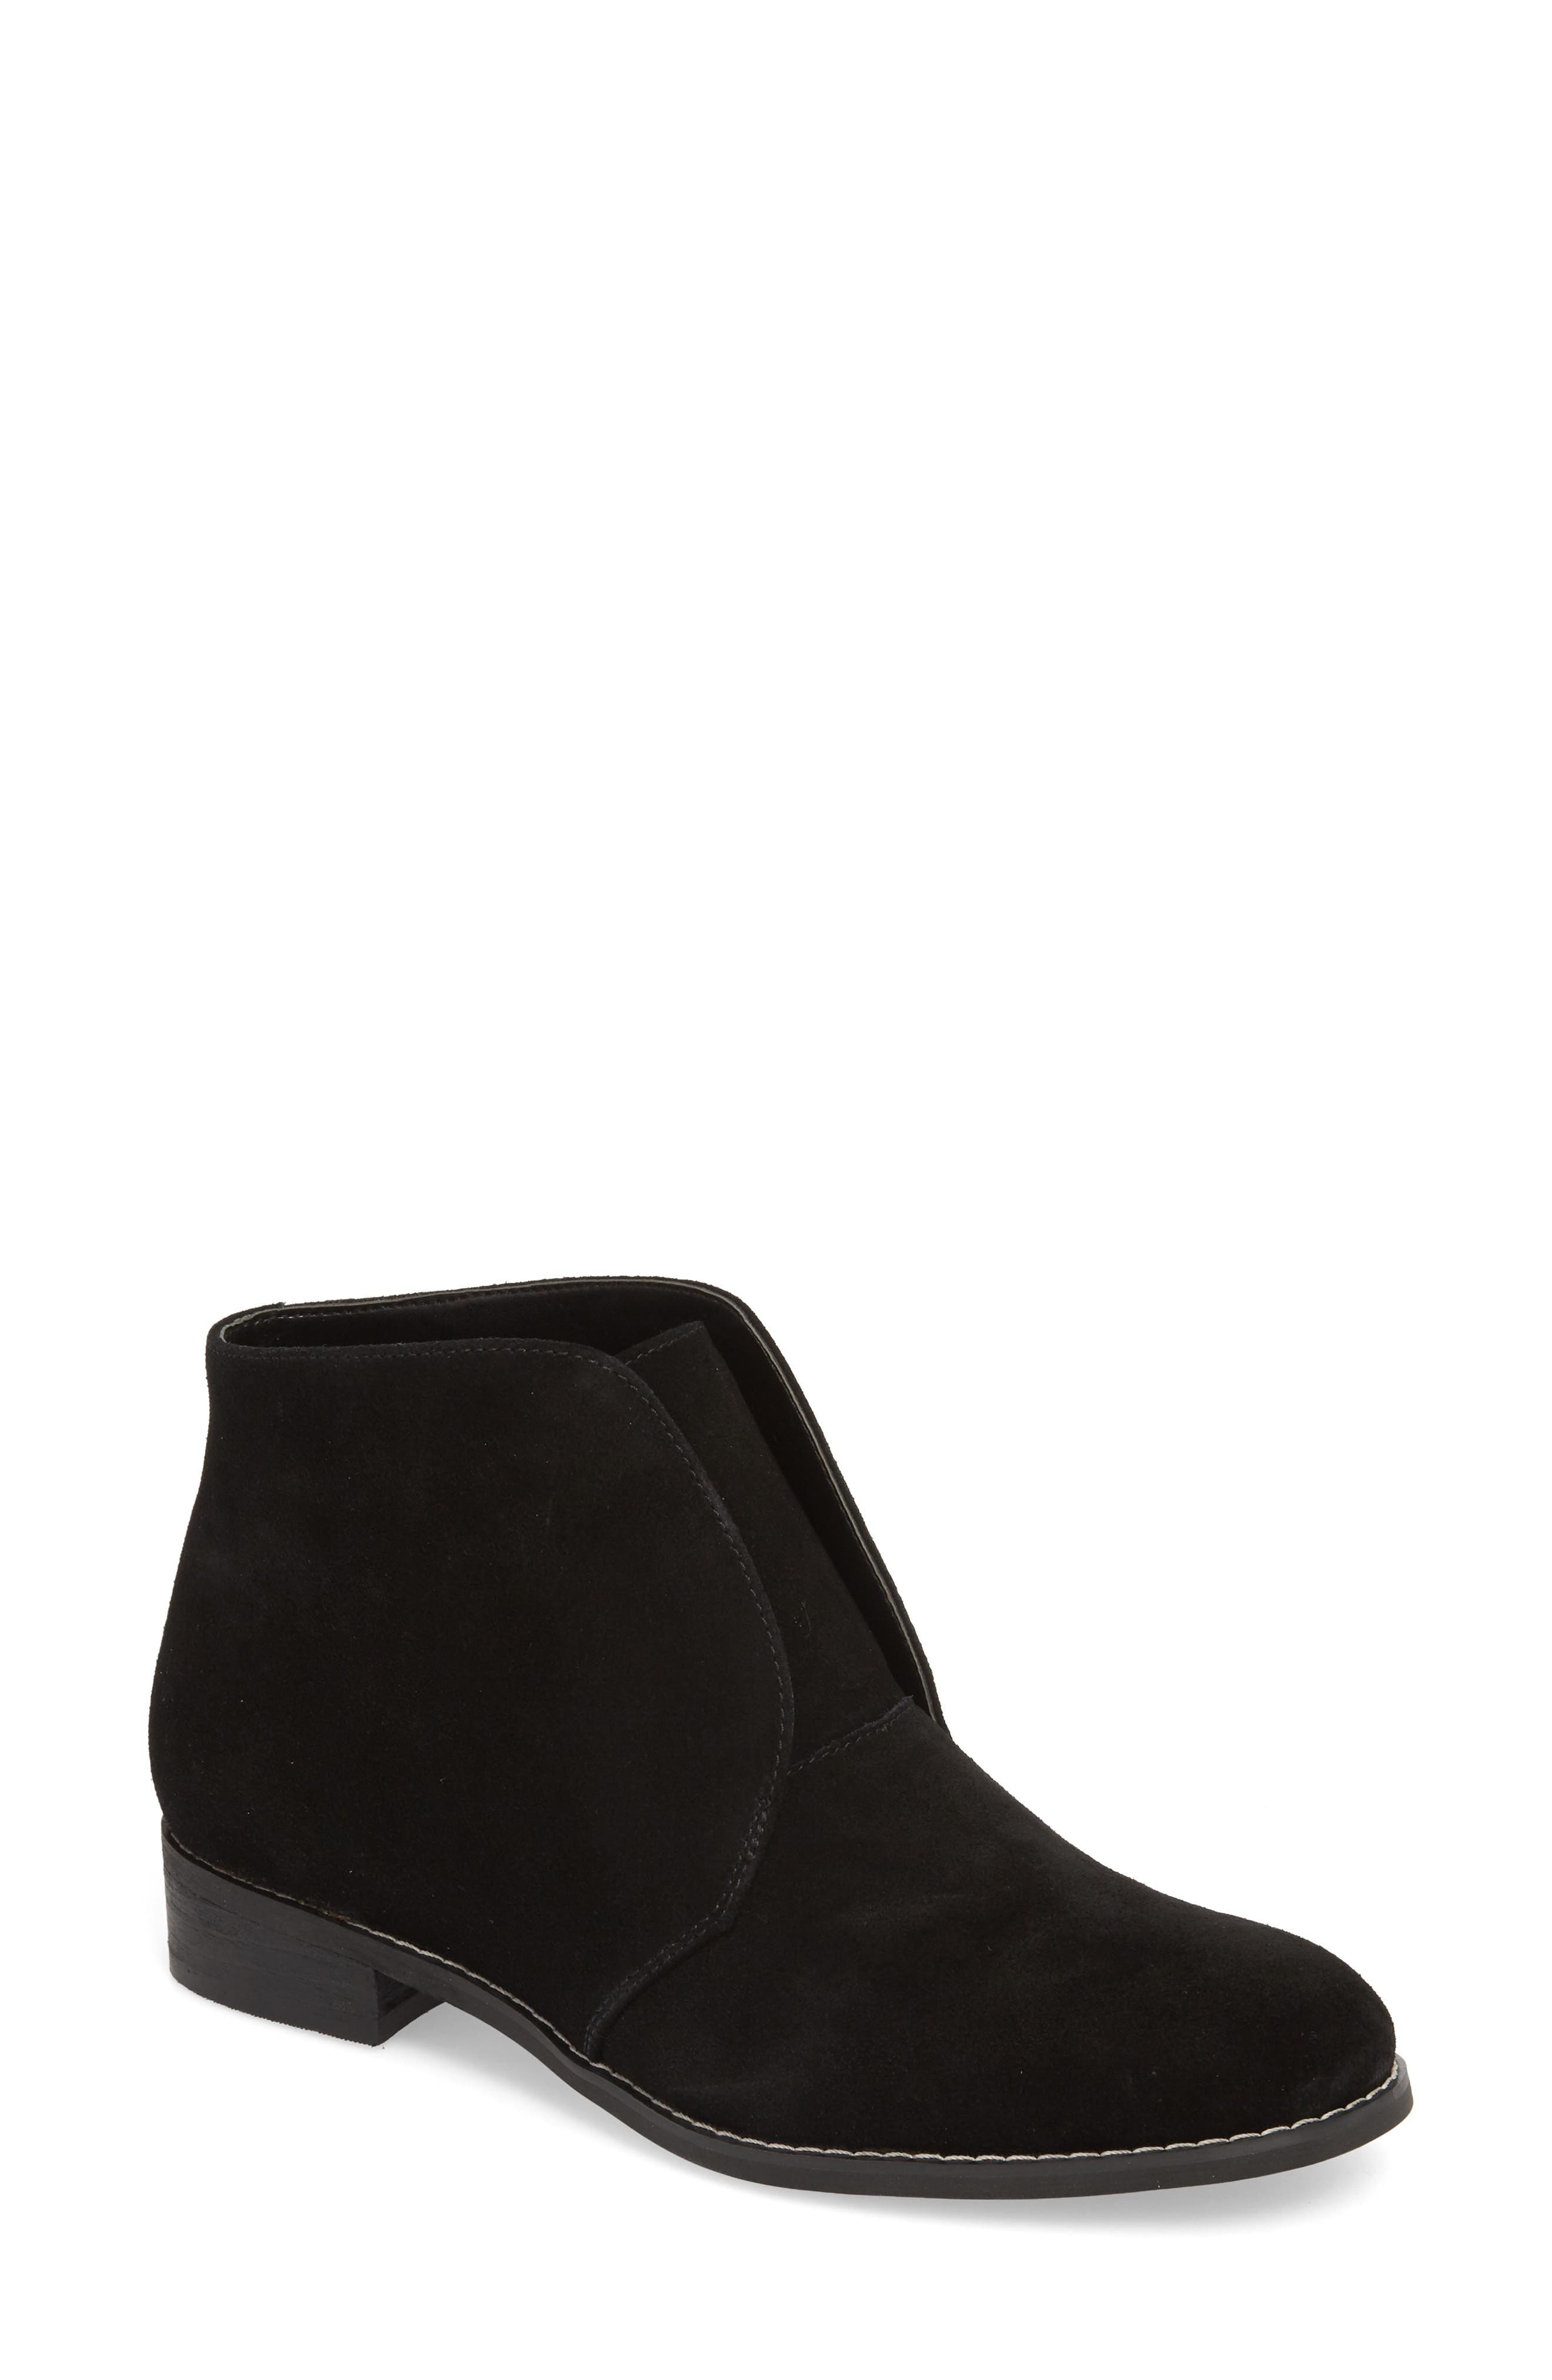 Verona Waterproof Bootie,                         Main,                         color, 006